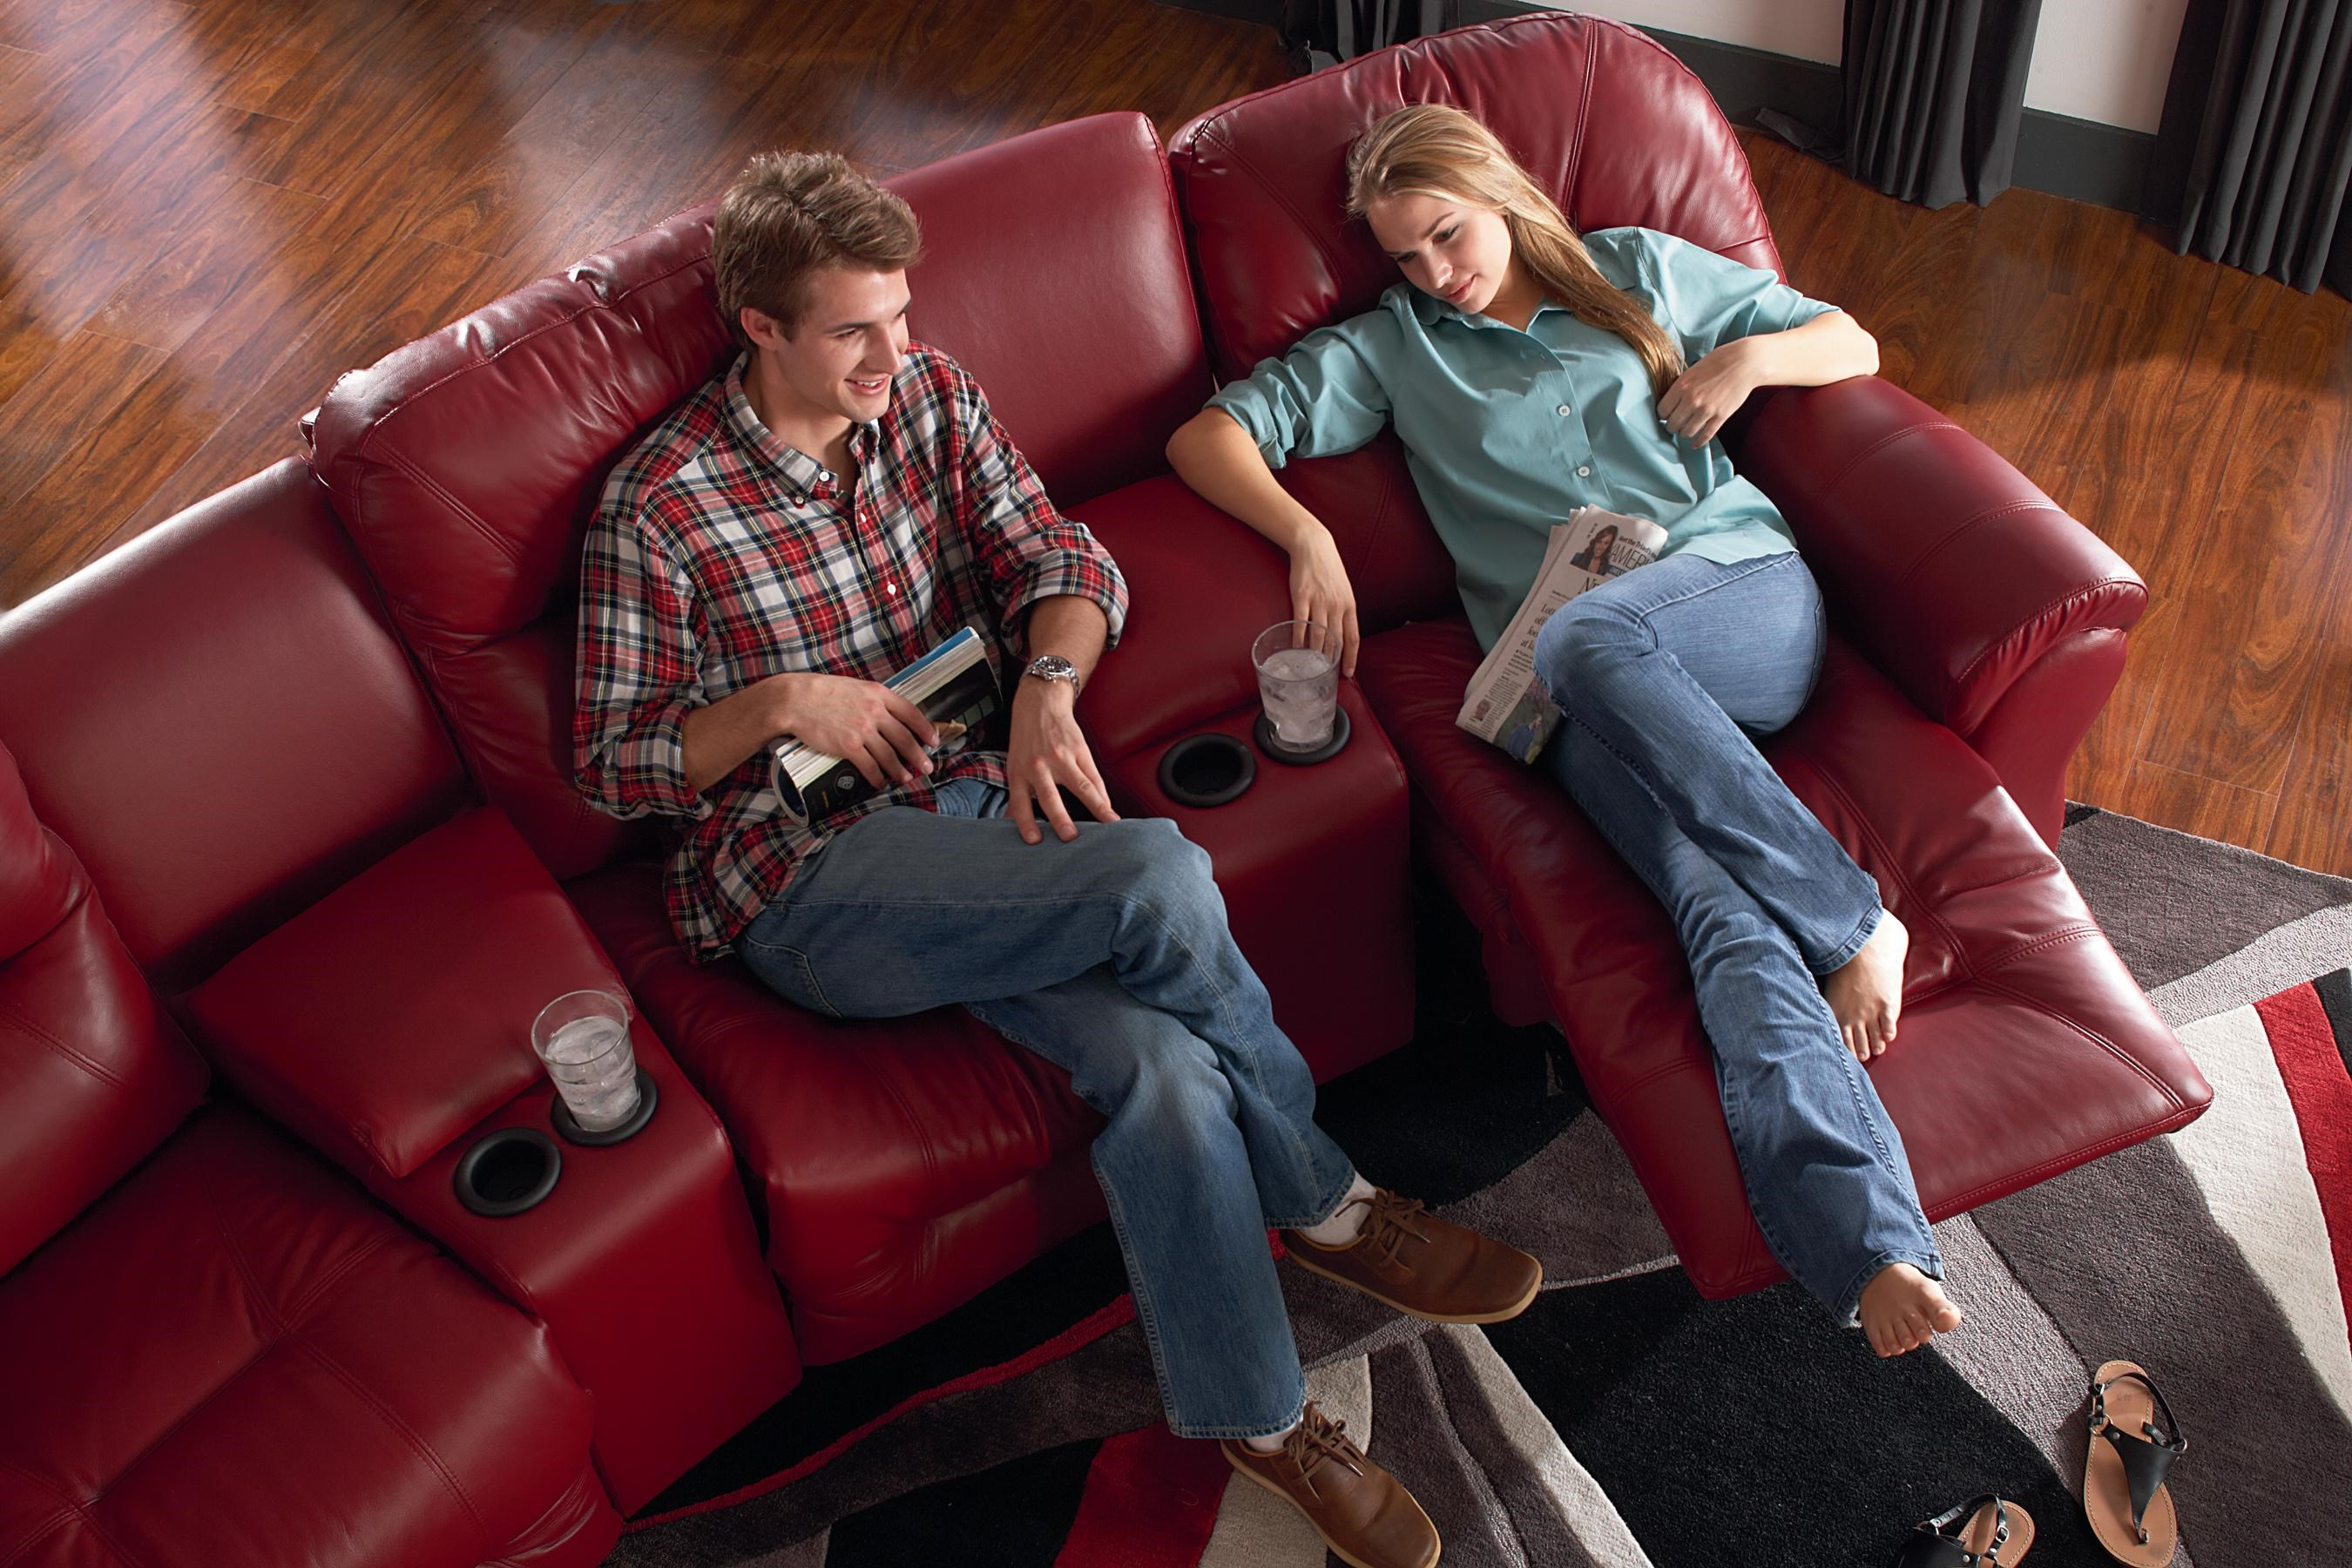 Best Home Furnishings Bodie 4-Seater Power Reclining Home Theater Group & Best Home Furnishings Bodie 4-Seater Power Reclining Home Theater ... islam-shia.org